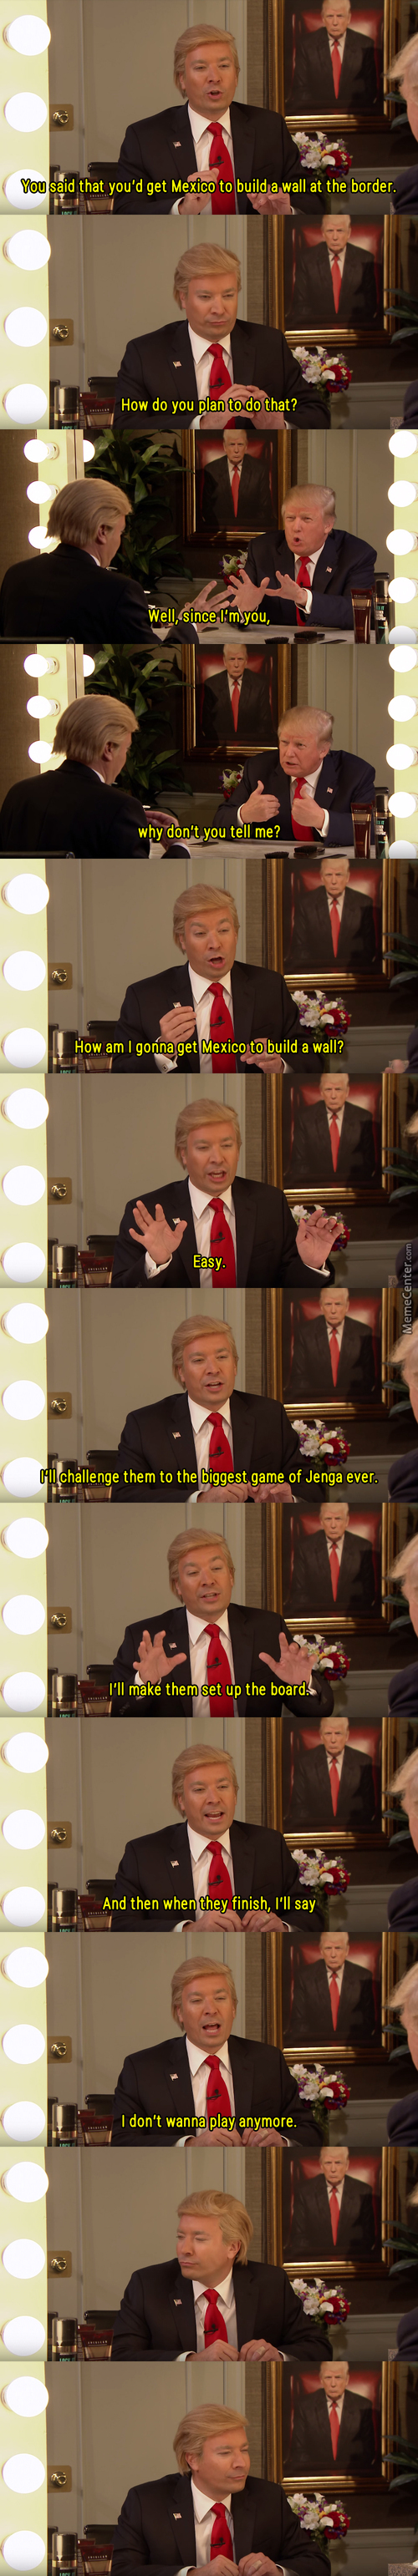 Jimmy Fallon Interviews Donald Trump, Or The Other Way Around.